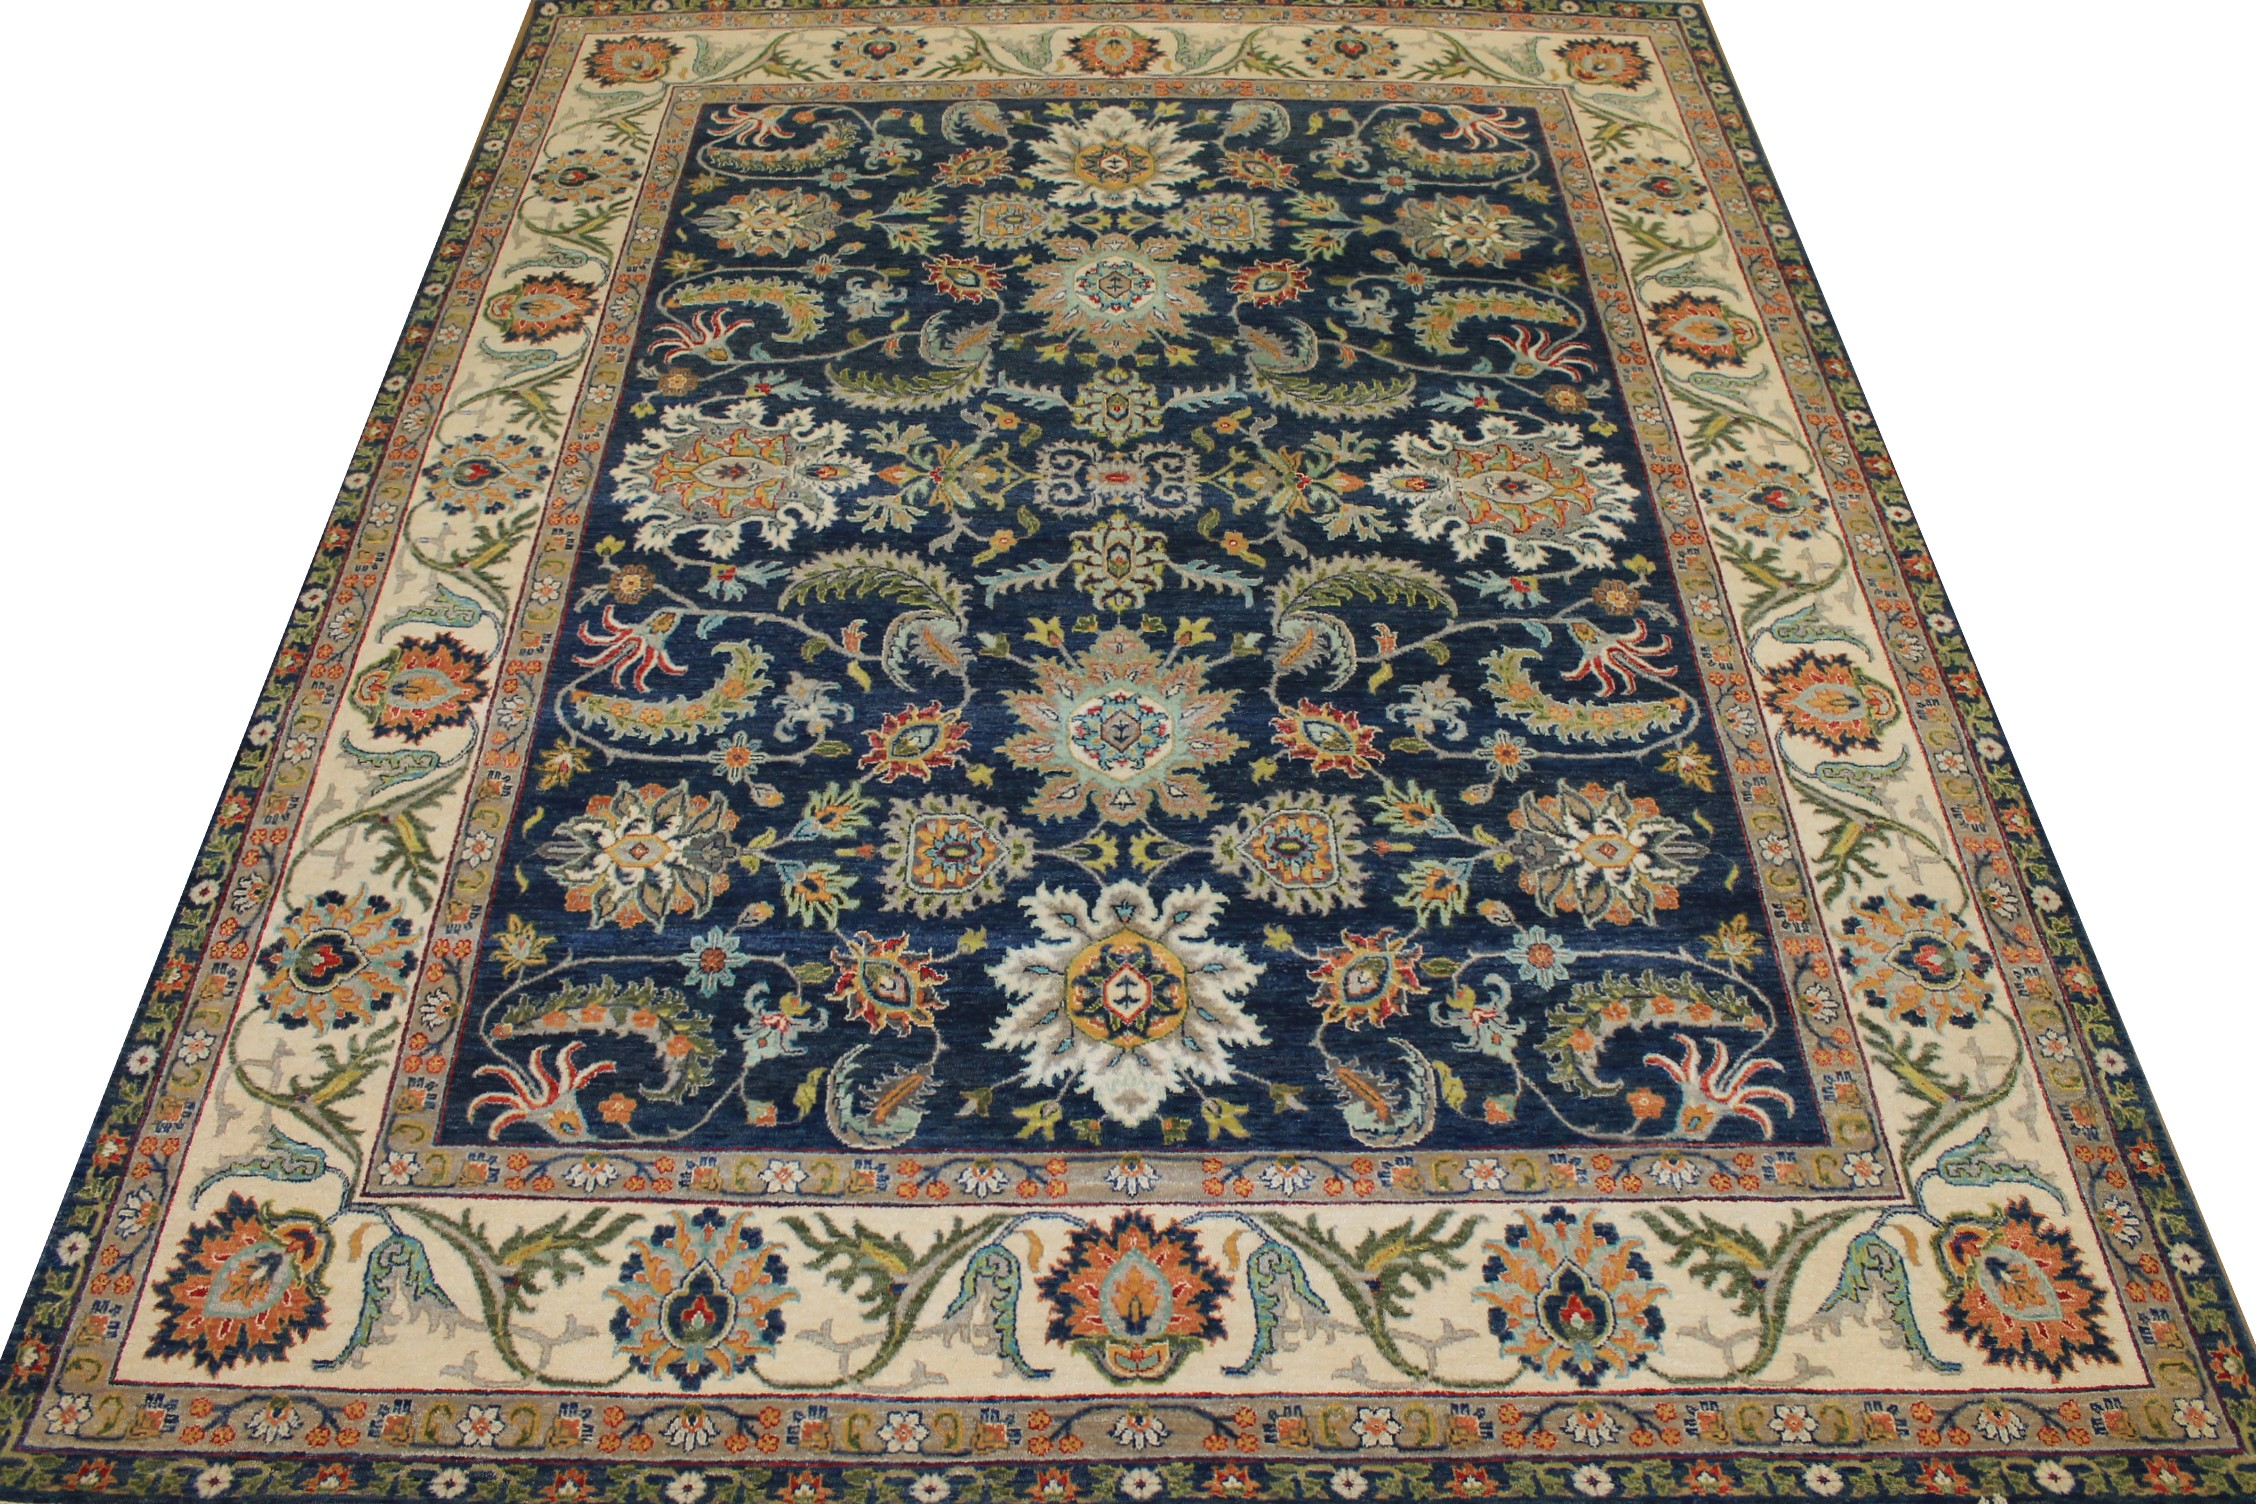 8x10 Traditional Hand Knotted Wool Area Rug - MR025239